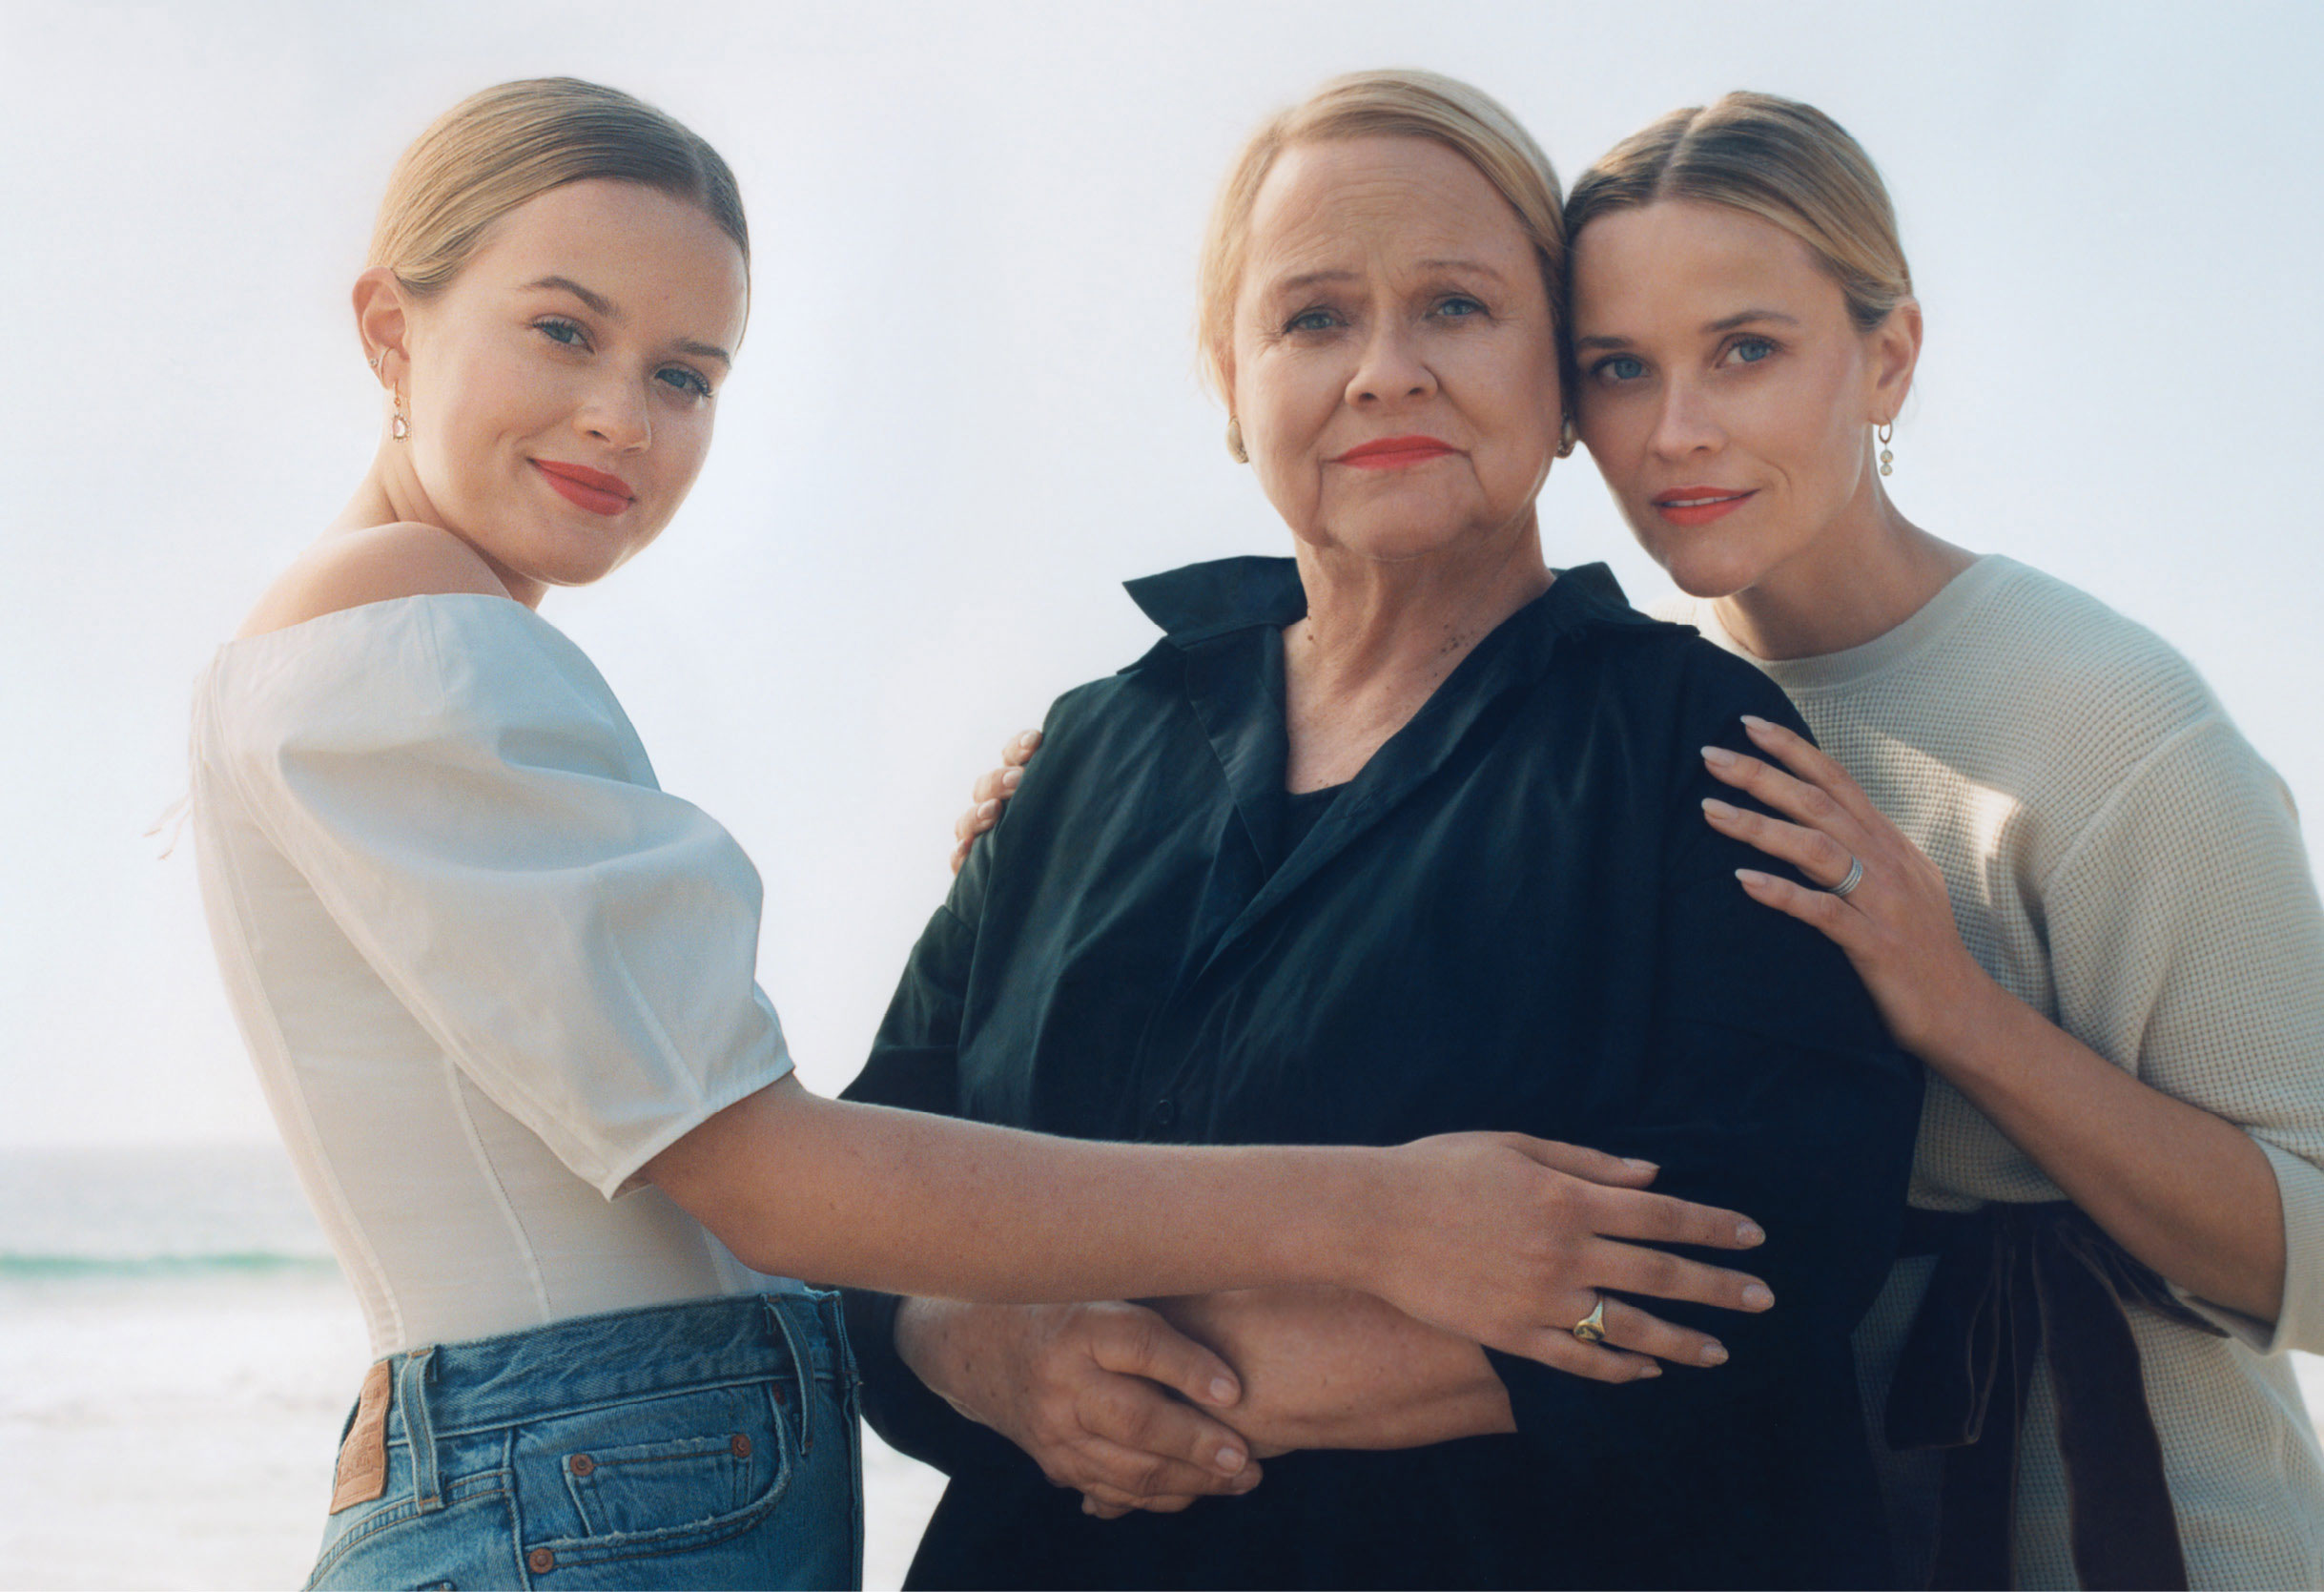 Reese Witherspoon Posed With Her Mom and Daughter on the February Cover of 'Vogue' - Reese Witherspoon Posed With Her Mom and Daughter